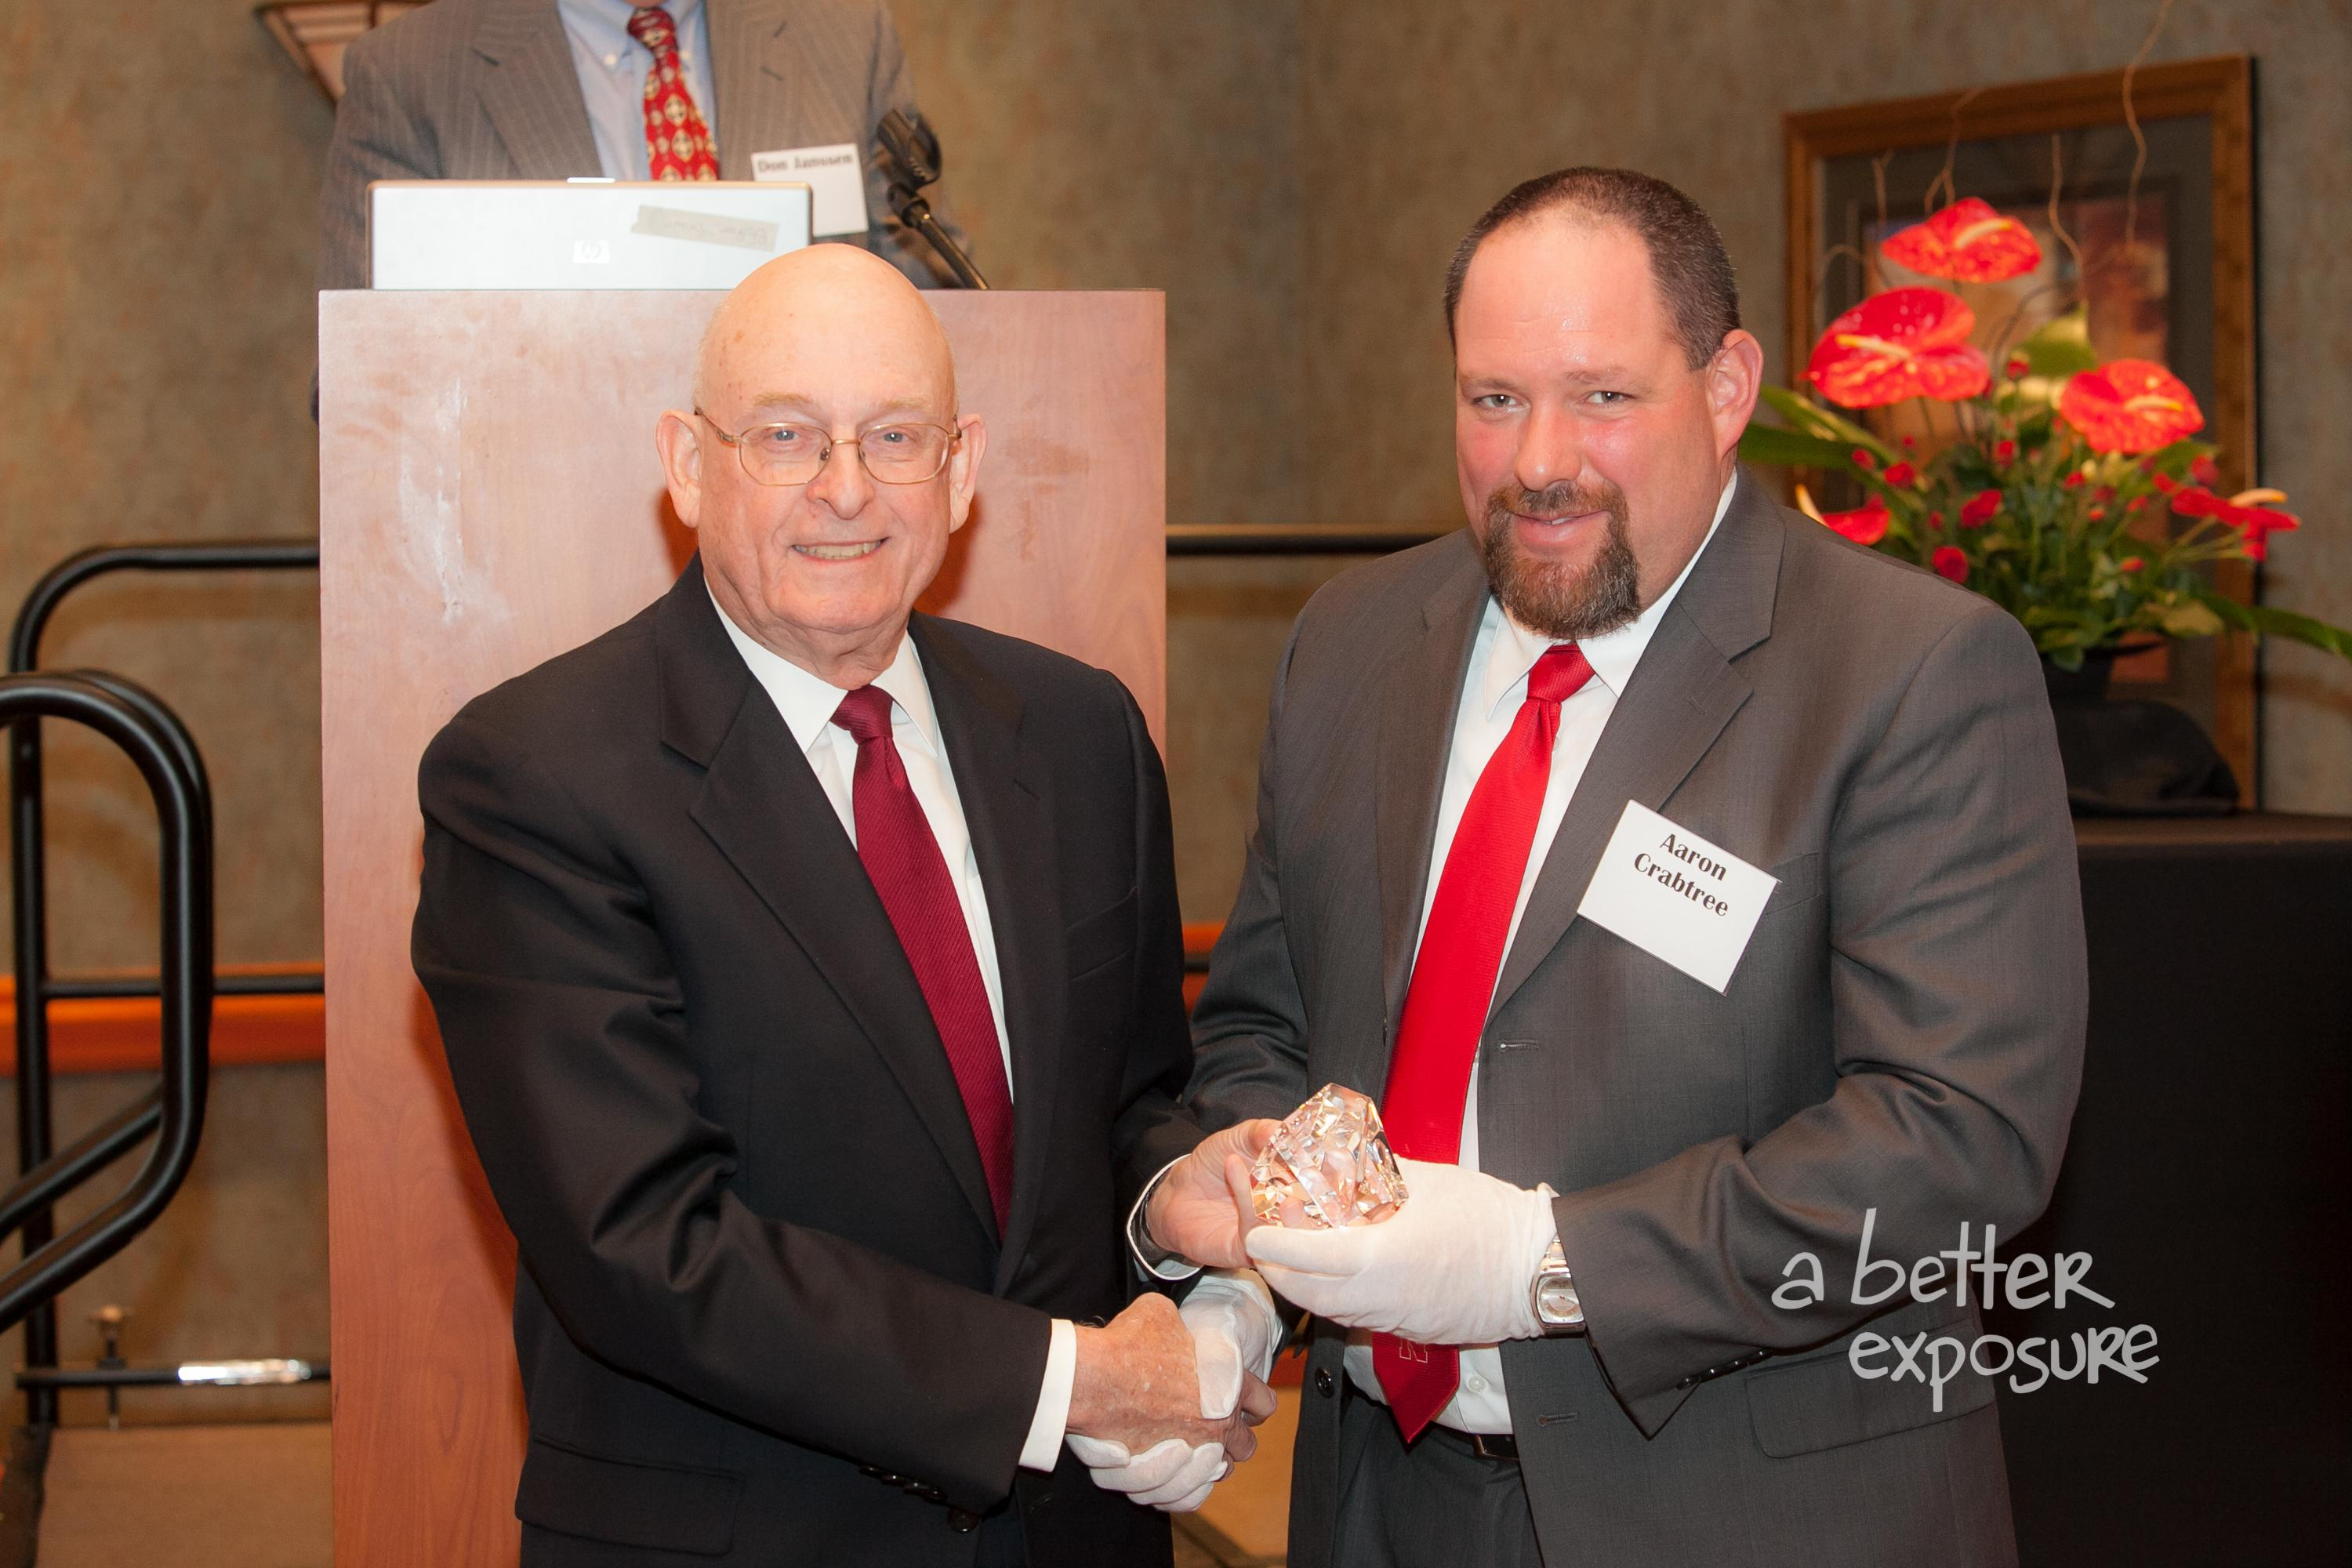 President Aaron Crabree presents Larry Gibbs with a gift from the Great Plains Federal Tax Institute